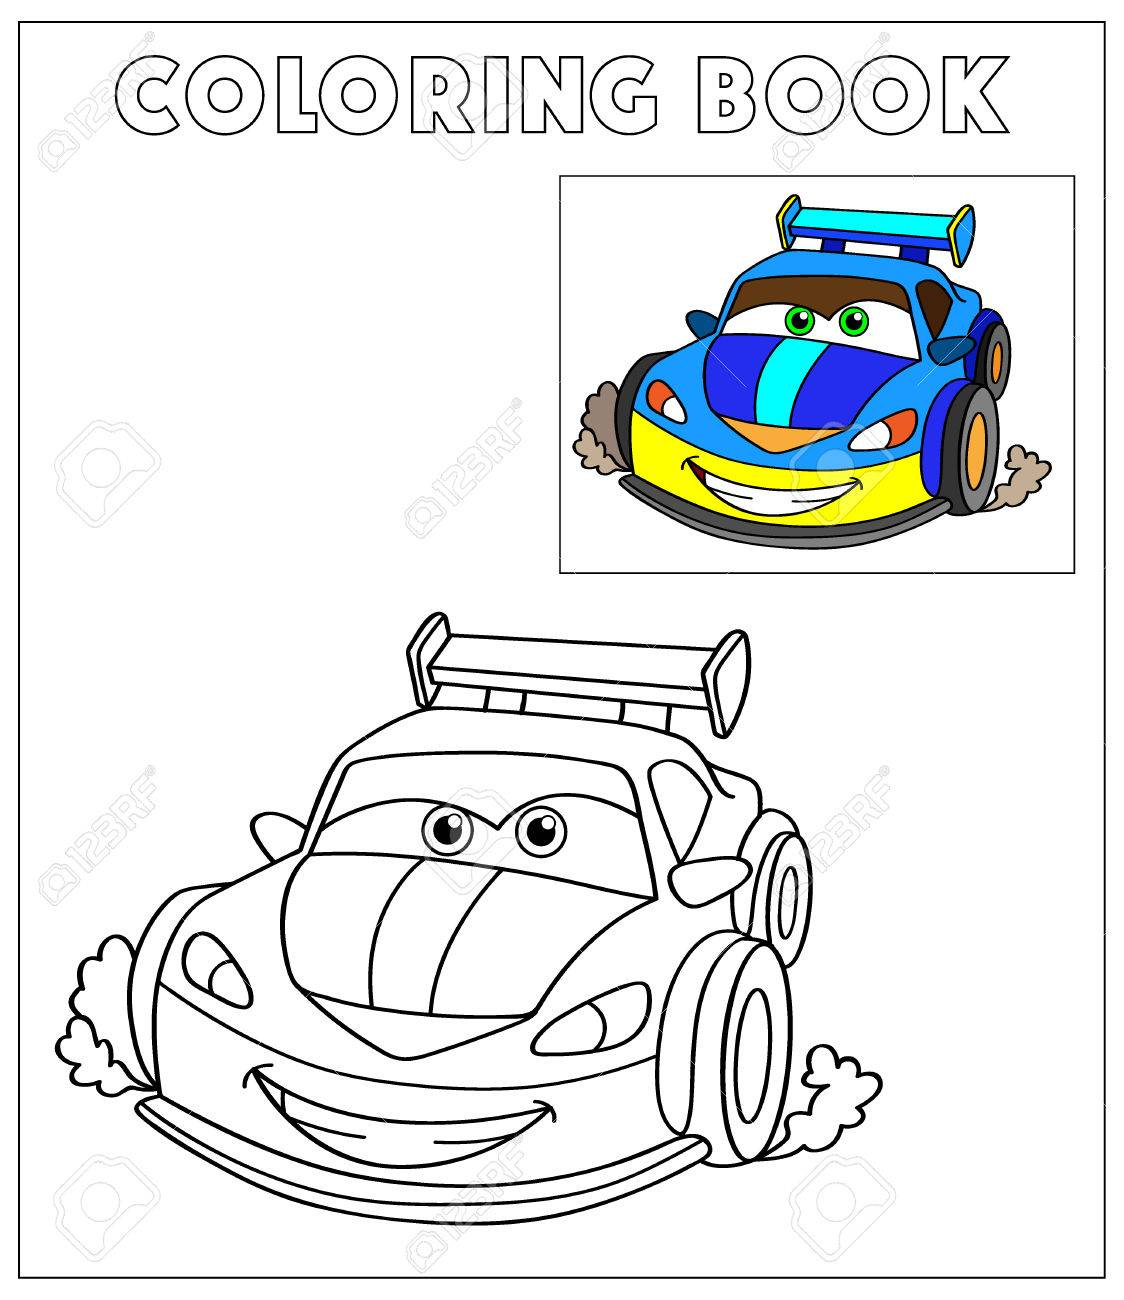 Coloring Book, Cartoon Vector Illustration of Black and White..